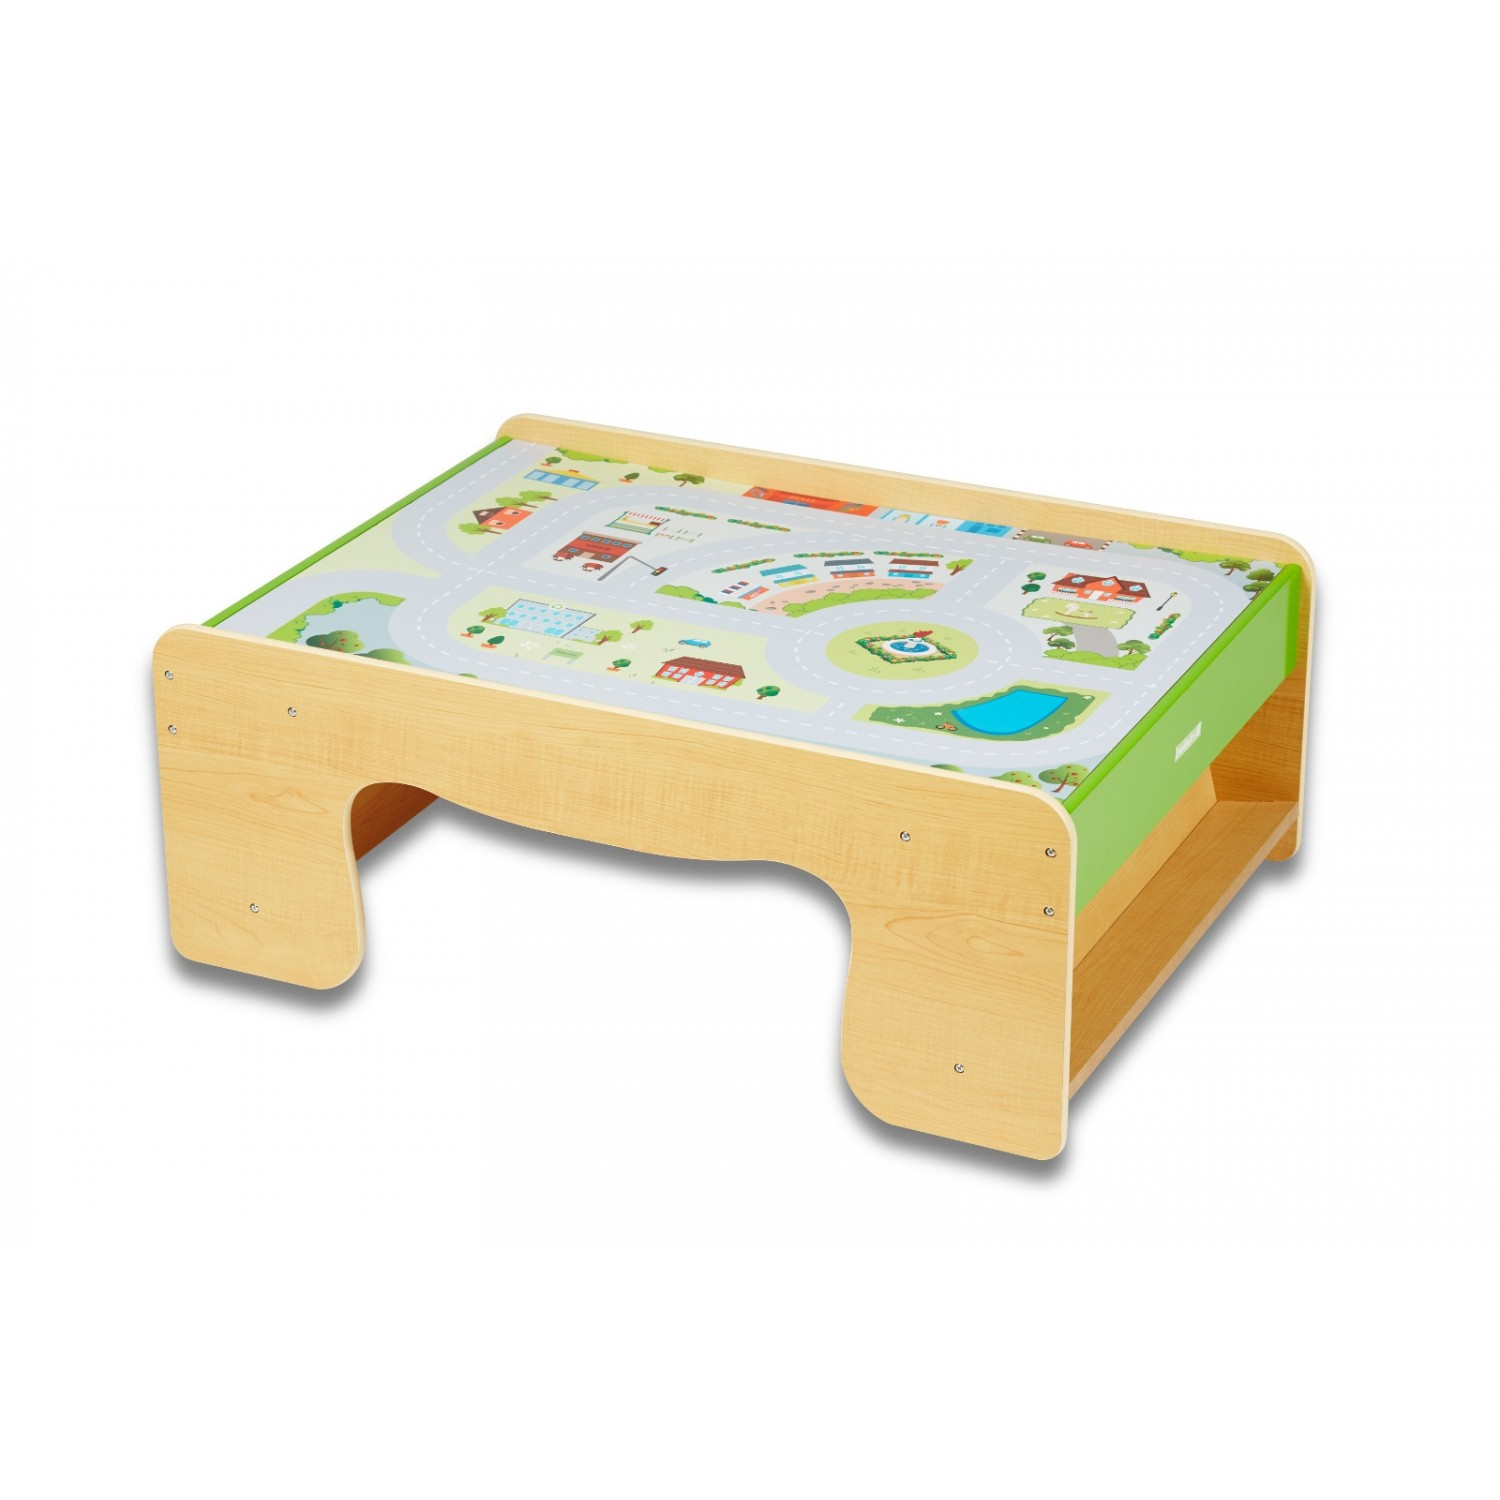 EverEarth Wooden Train Table made of FSC wood